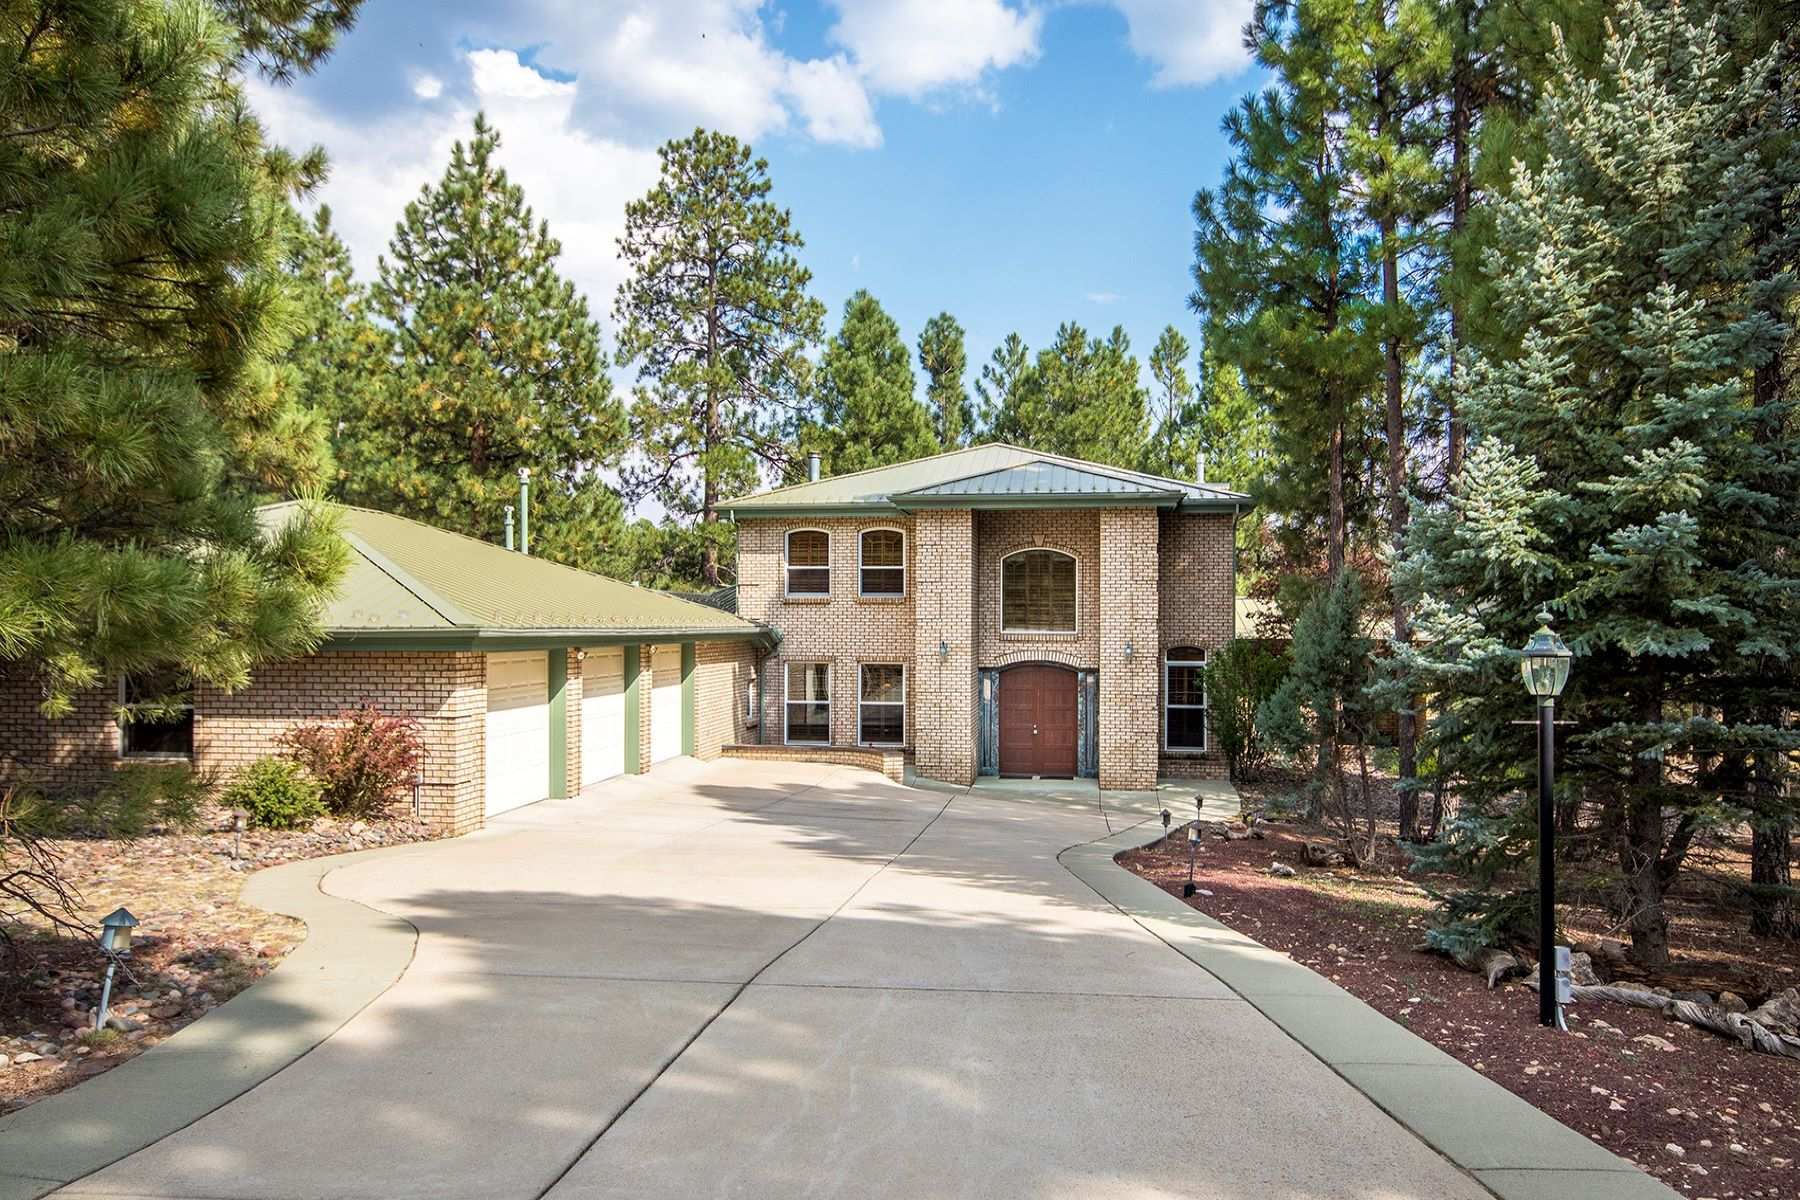 Casa Unifamiliar por un Venta en Lakeside Acres Estates Home 5035 E Lake Country RD, Flagstaff, Arizona, 86004 Estados Unidos